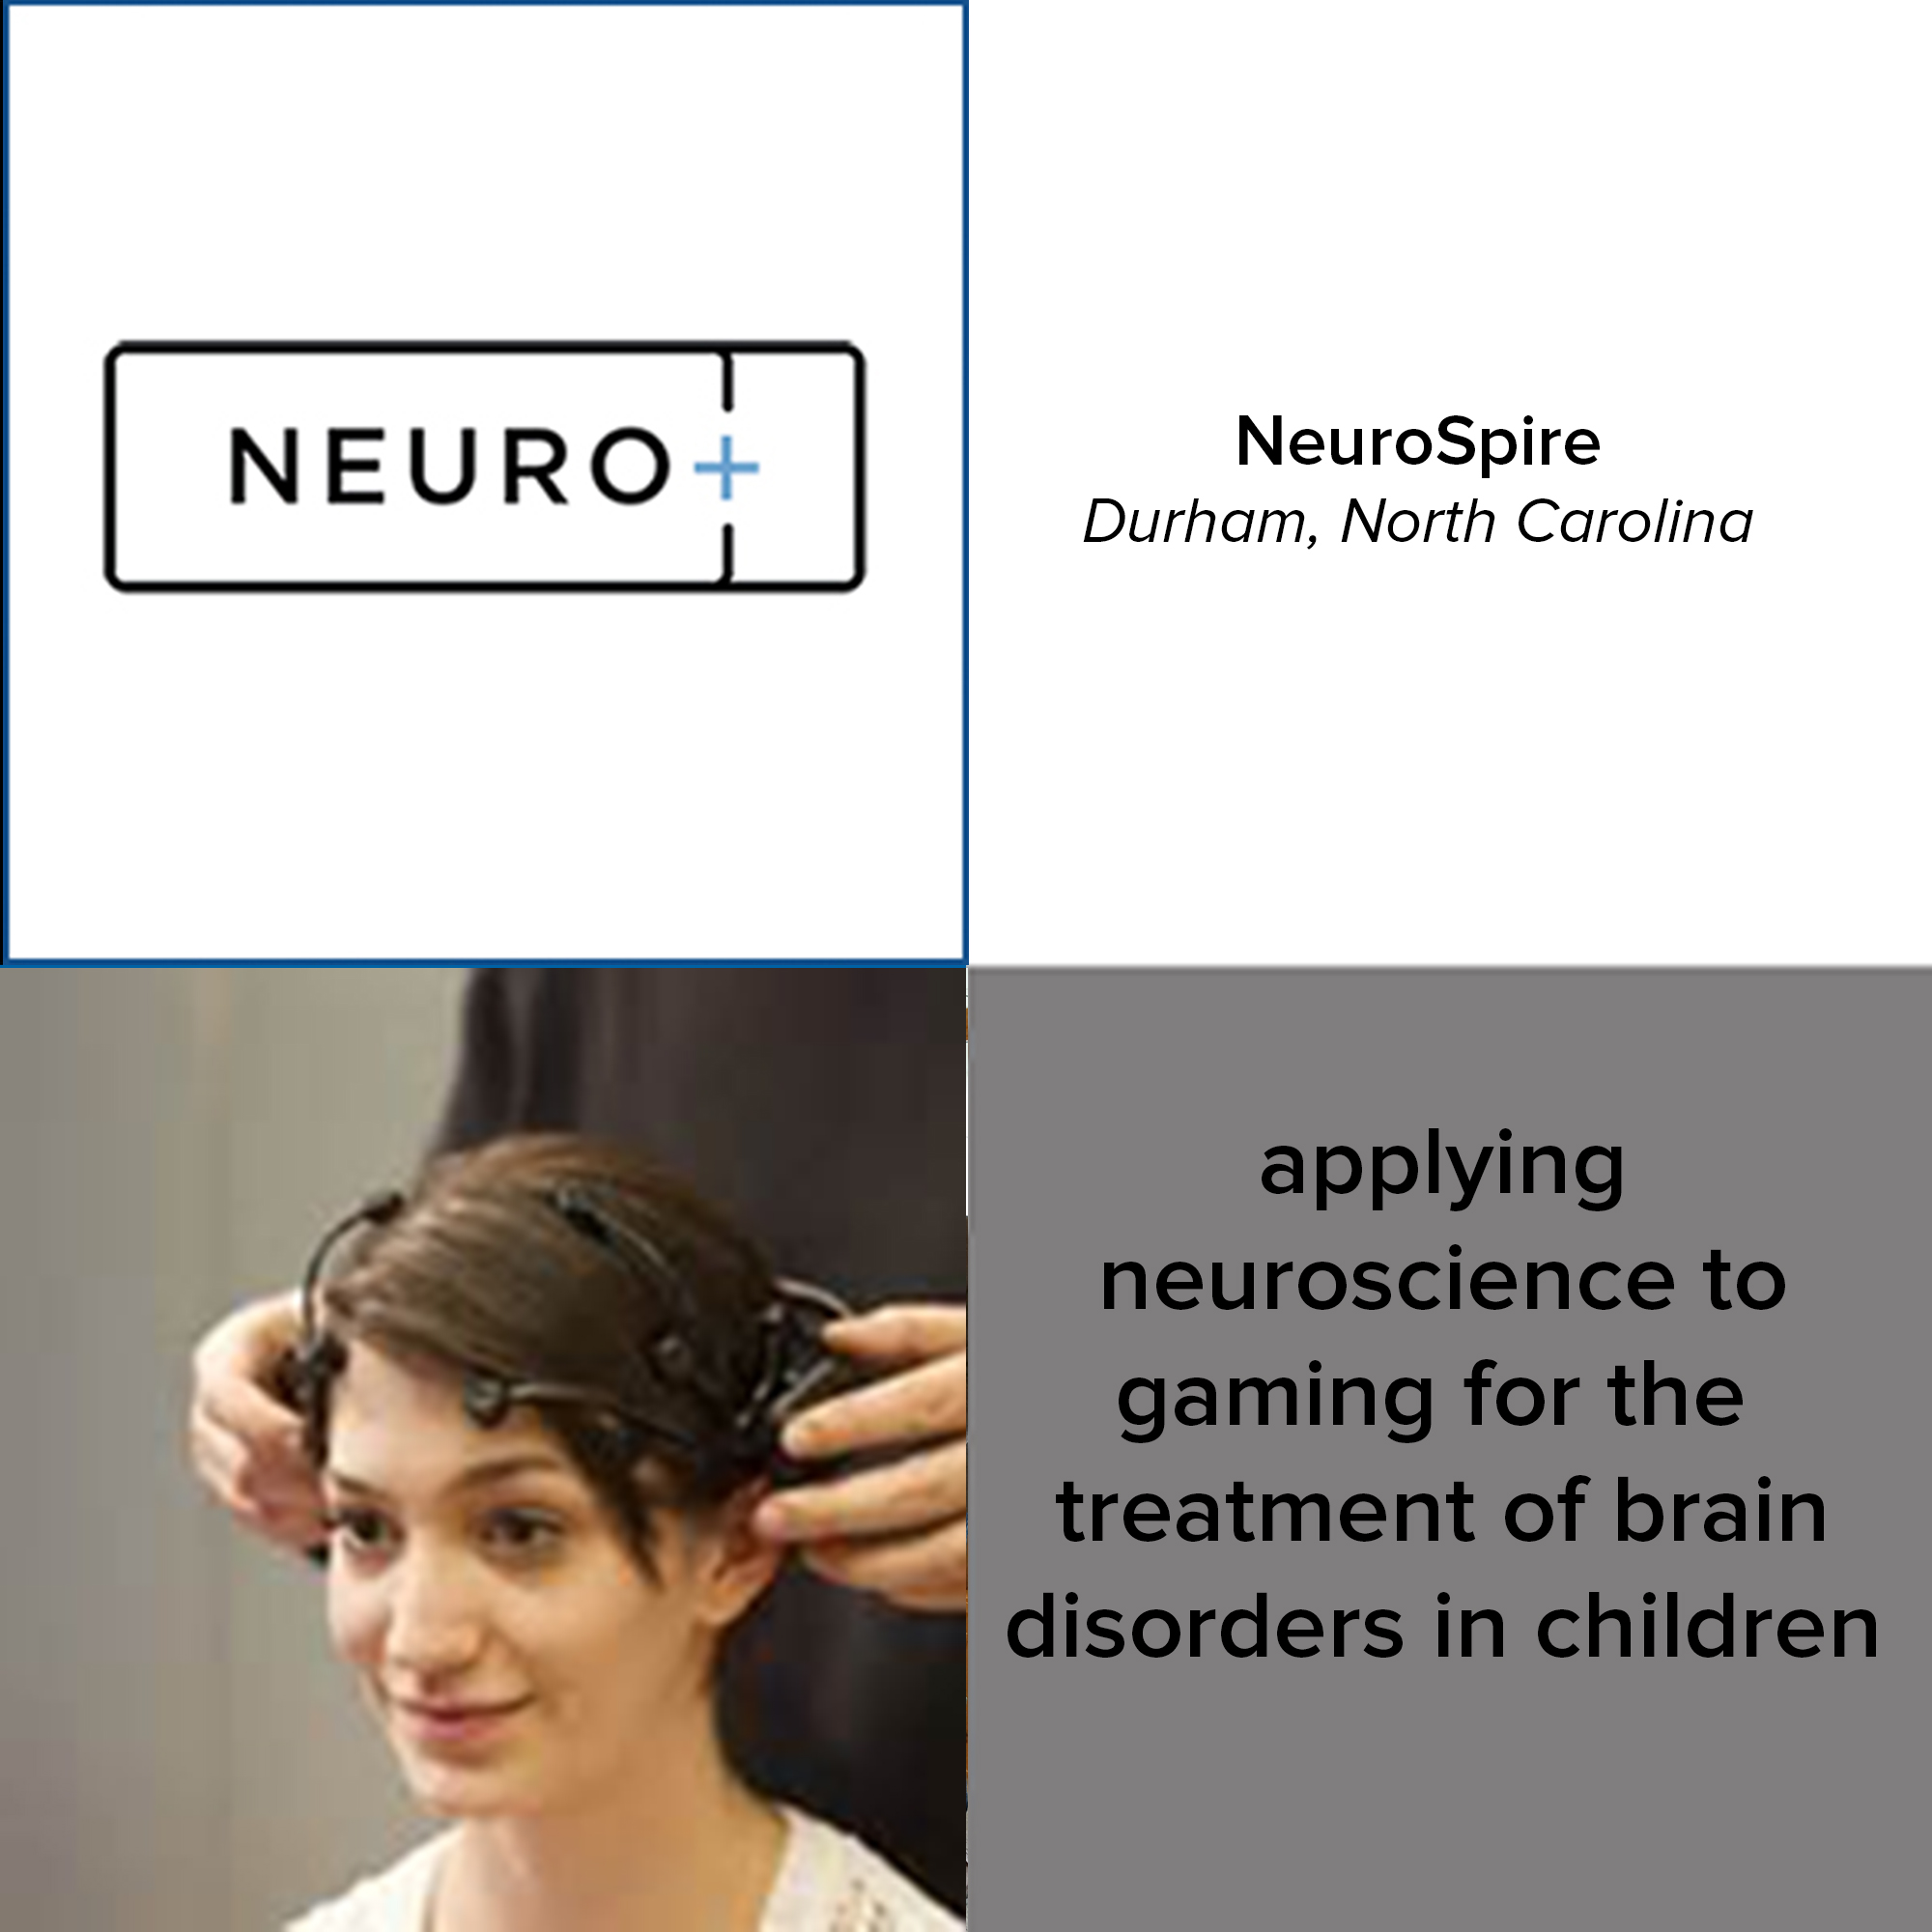 neurospire_2015website.jpg